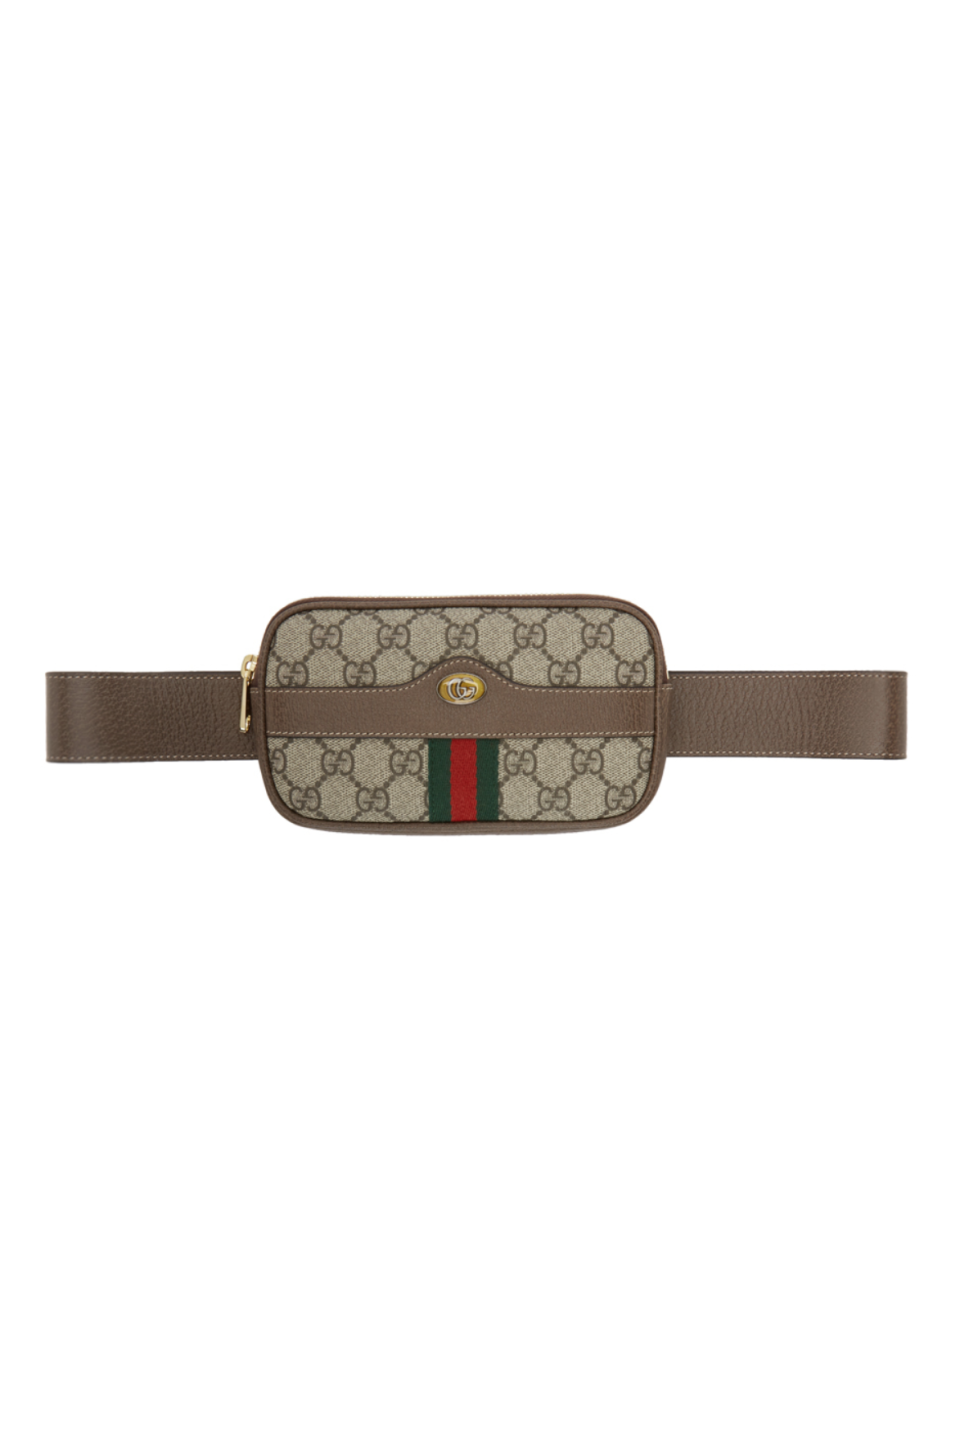 "<p><strong>Gucci</strong></p><p>ssense.com</p><p><strong>$695.00</strong></p><p><a href=""https://go.redirectingat.com?id=74968X1596630&url=https%3A%2F%2Fwww.ssense.com%2Fen-us%2Fwomen%2Fproduct%2Fgucci%2Fbrown-gg-supreme-ophidia-iphone-case-belt-bag%2F3413079&sref=https%3A%2F%2Fwww.marieclaire.com%2Ffashion%2Fg32883210%2Fcell-phone-purse%2F"" rel=""nofollow noopener"" target=""_blank"" data-ylk=""slk:Shop it"" class=""link rapid-noclick-resp"">Shop it</a></p><p>For a busy day ahead, go completely hands-free with a Gucci iPhone case belt bag. </p>"